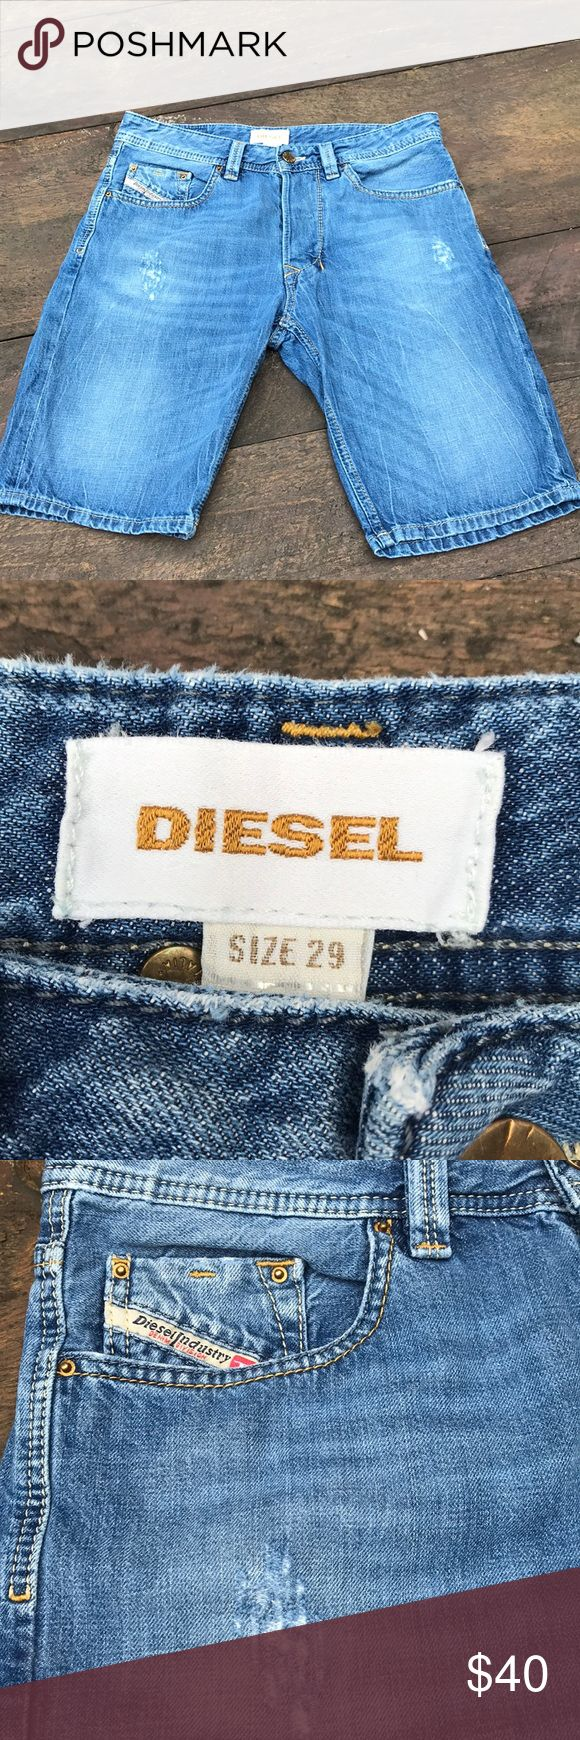 Men's diesel denim short Men's Diesel denim short. Size 29. Distressed. Button fly. Great condition. Diesel Shorts